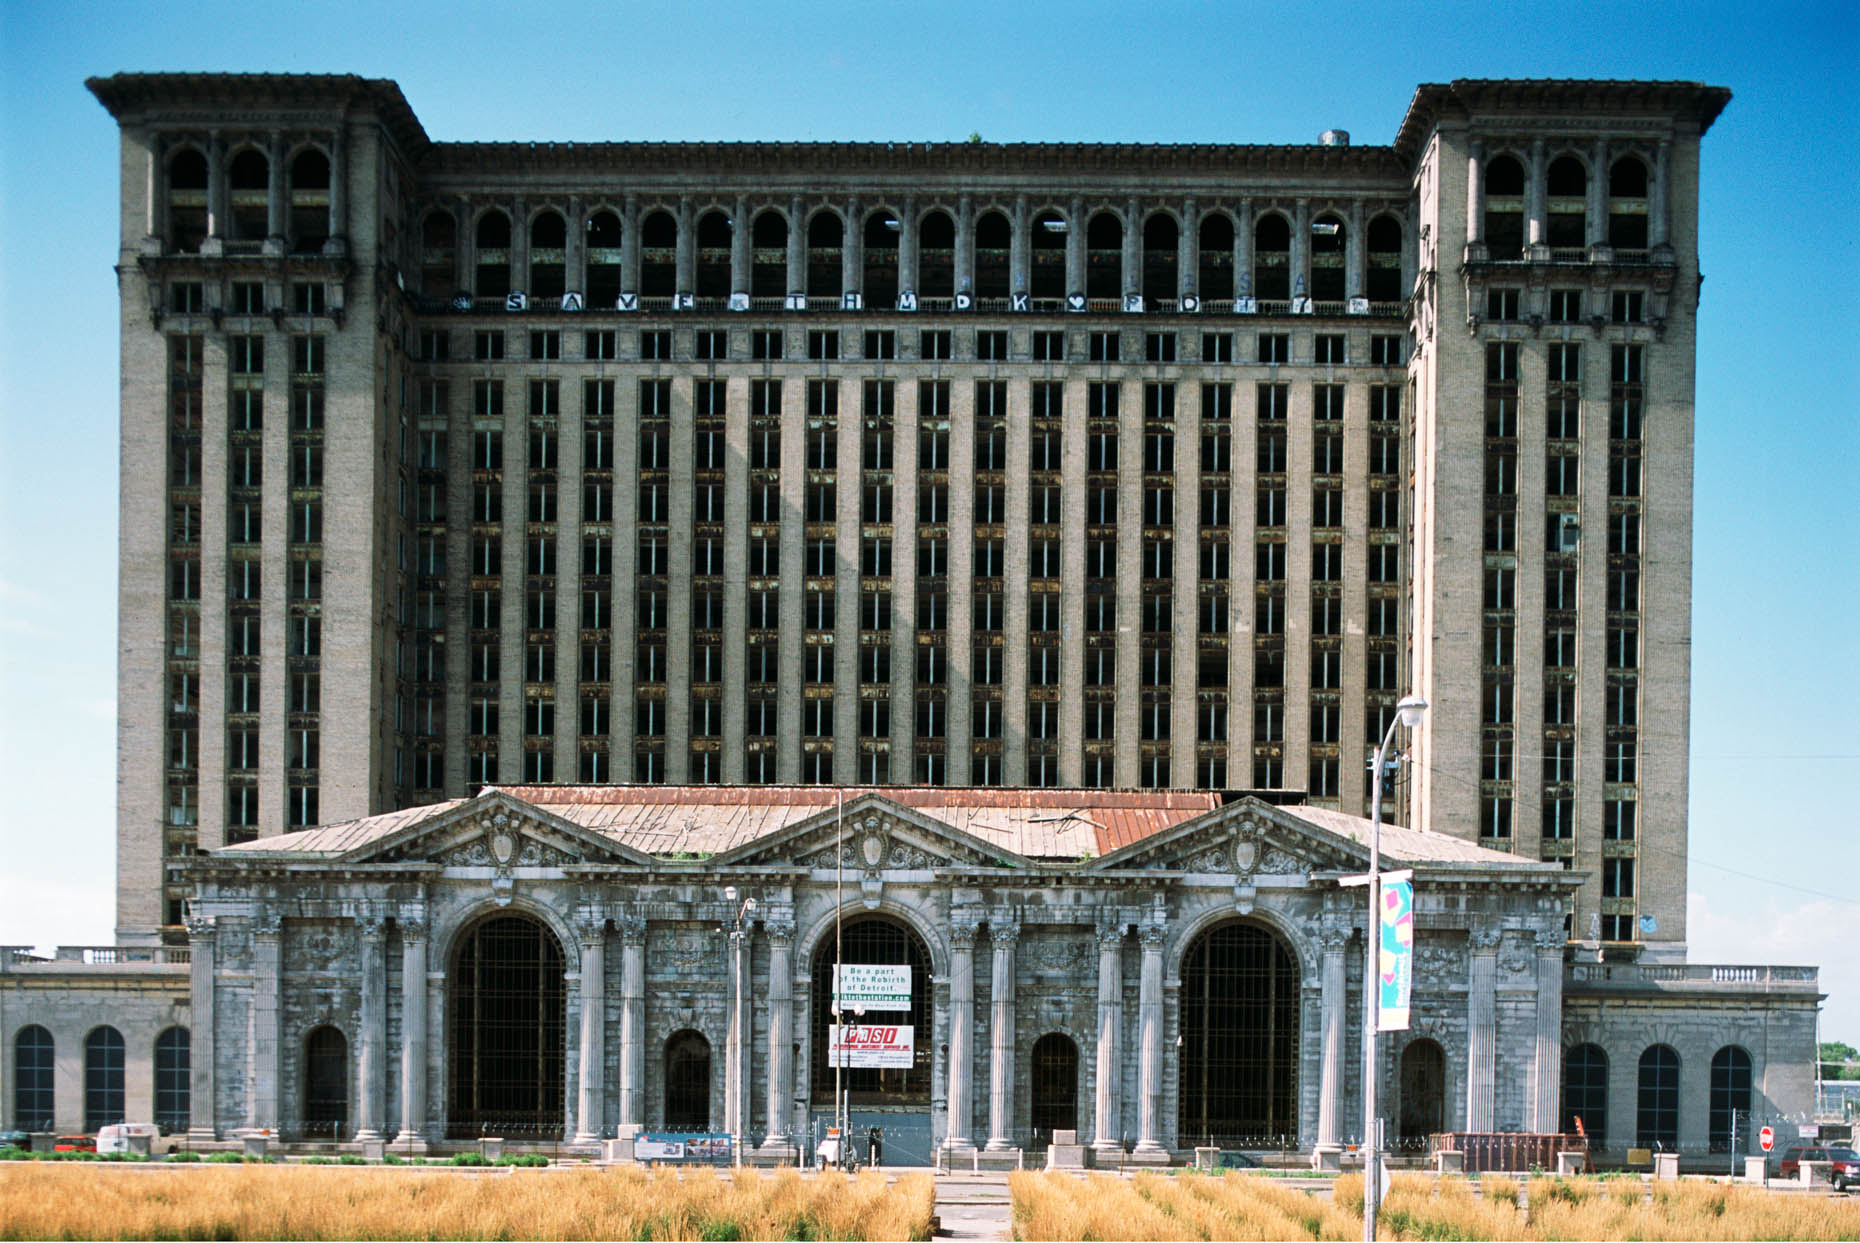 09_Former Michigan Central Railroad Station, Detroit, 2012_-DUP1.jpg